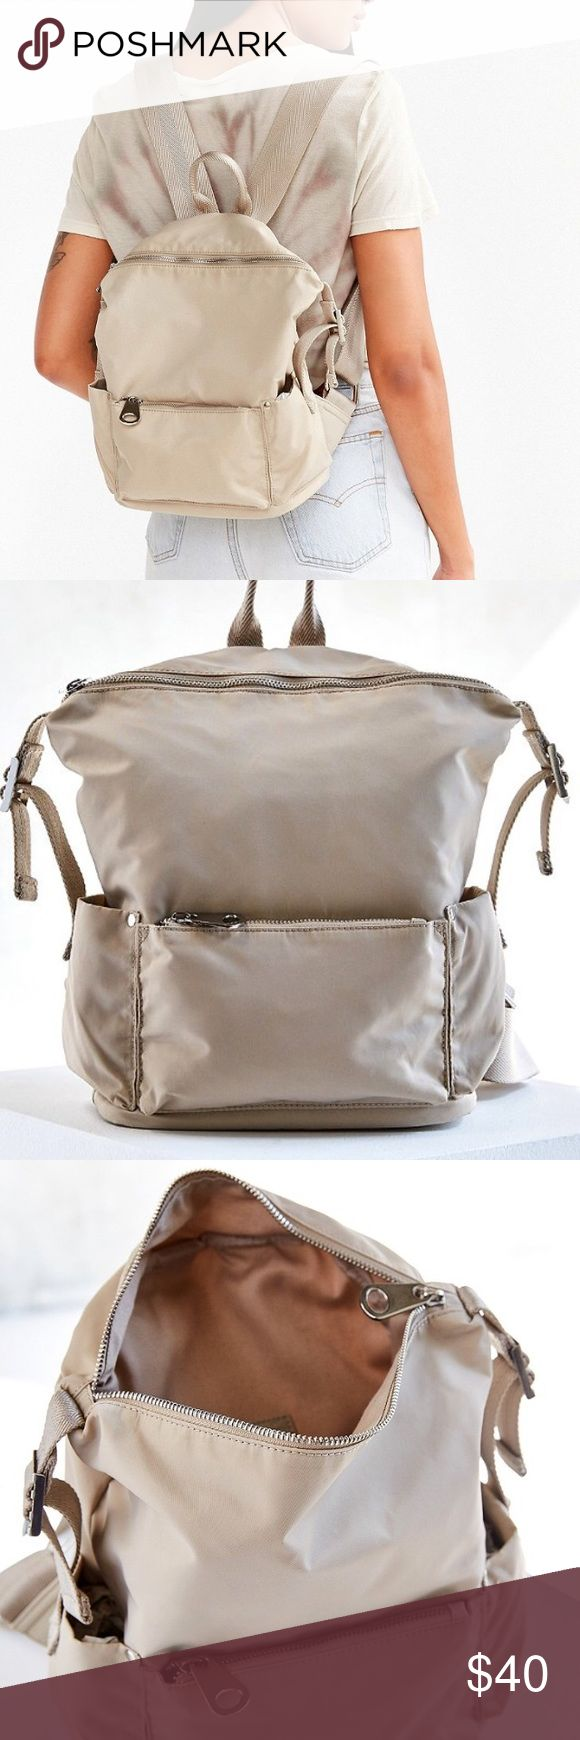 """Last OneNWT Urban Outfitters cream backpack Sporty-sleek backpack from the innovators at Silence + Noise, cut mini so you never over pack. Featuring exposed metal zipper closures at main compartment + front pocket with pouches at sides. Accented with adjustable woven buckles + shoulder straps cut wide complete with a top carrying handle. Perfect for concerts, brunch and everything in between. - Polyester.   Spot clean Length: 9.5""""Width: 5.25"""" Height: 11.5""""       Handle drop: 3.5"""" Urban…"""